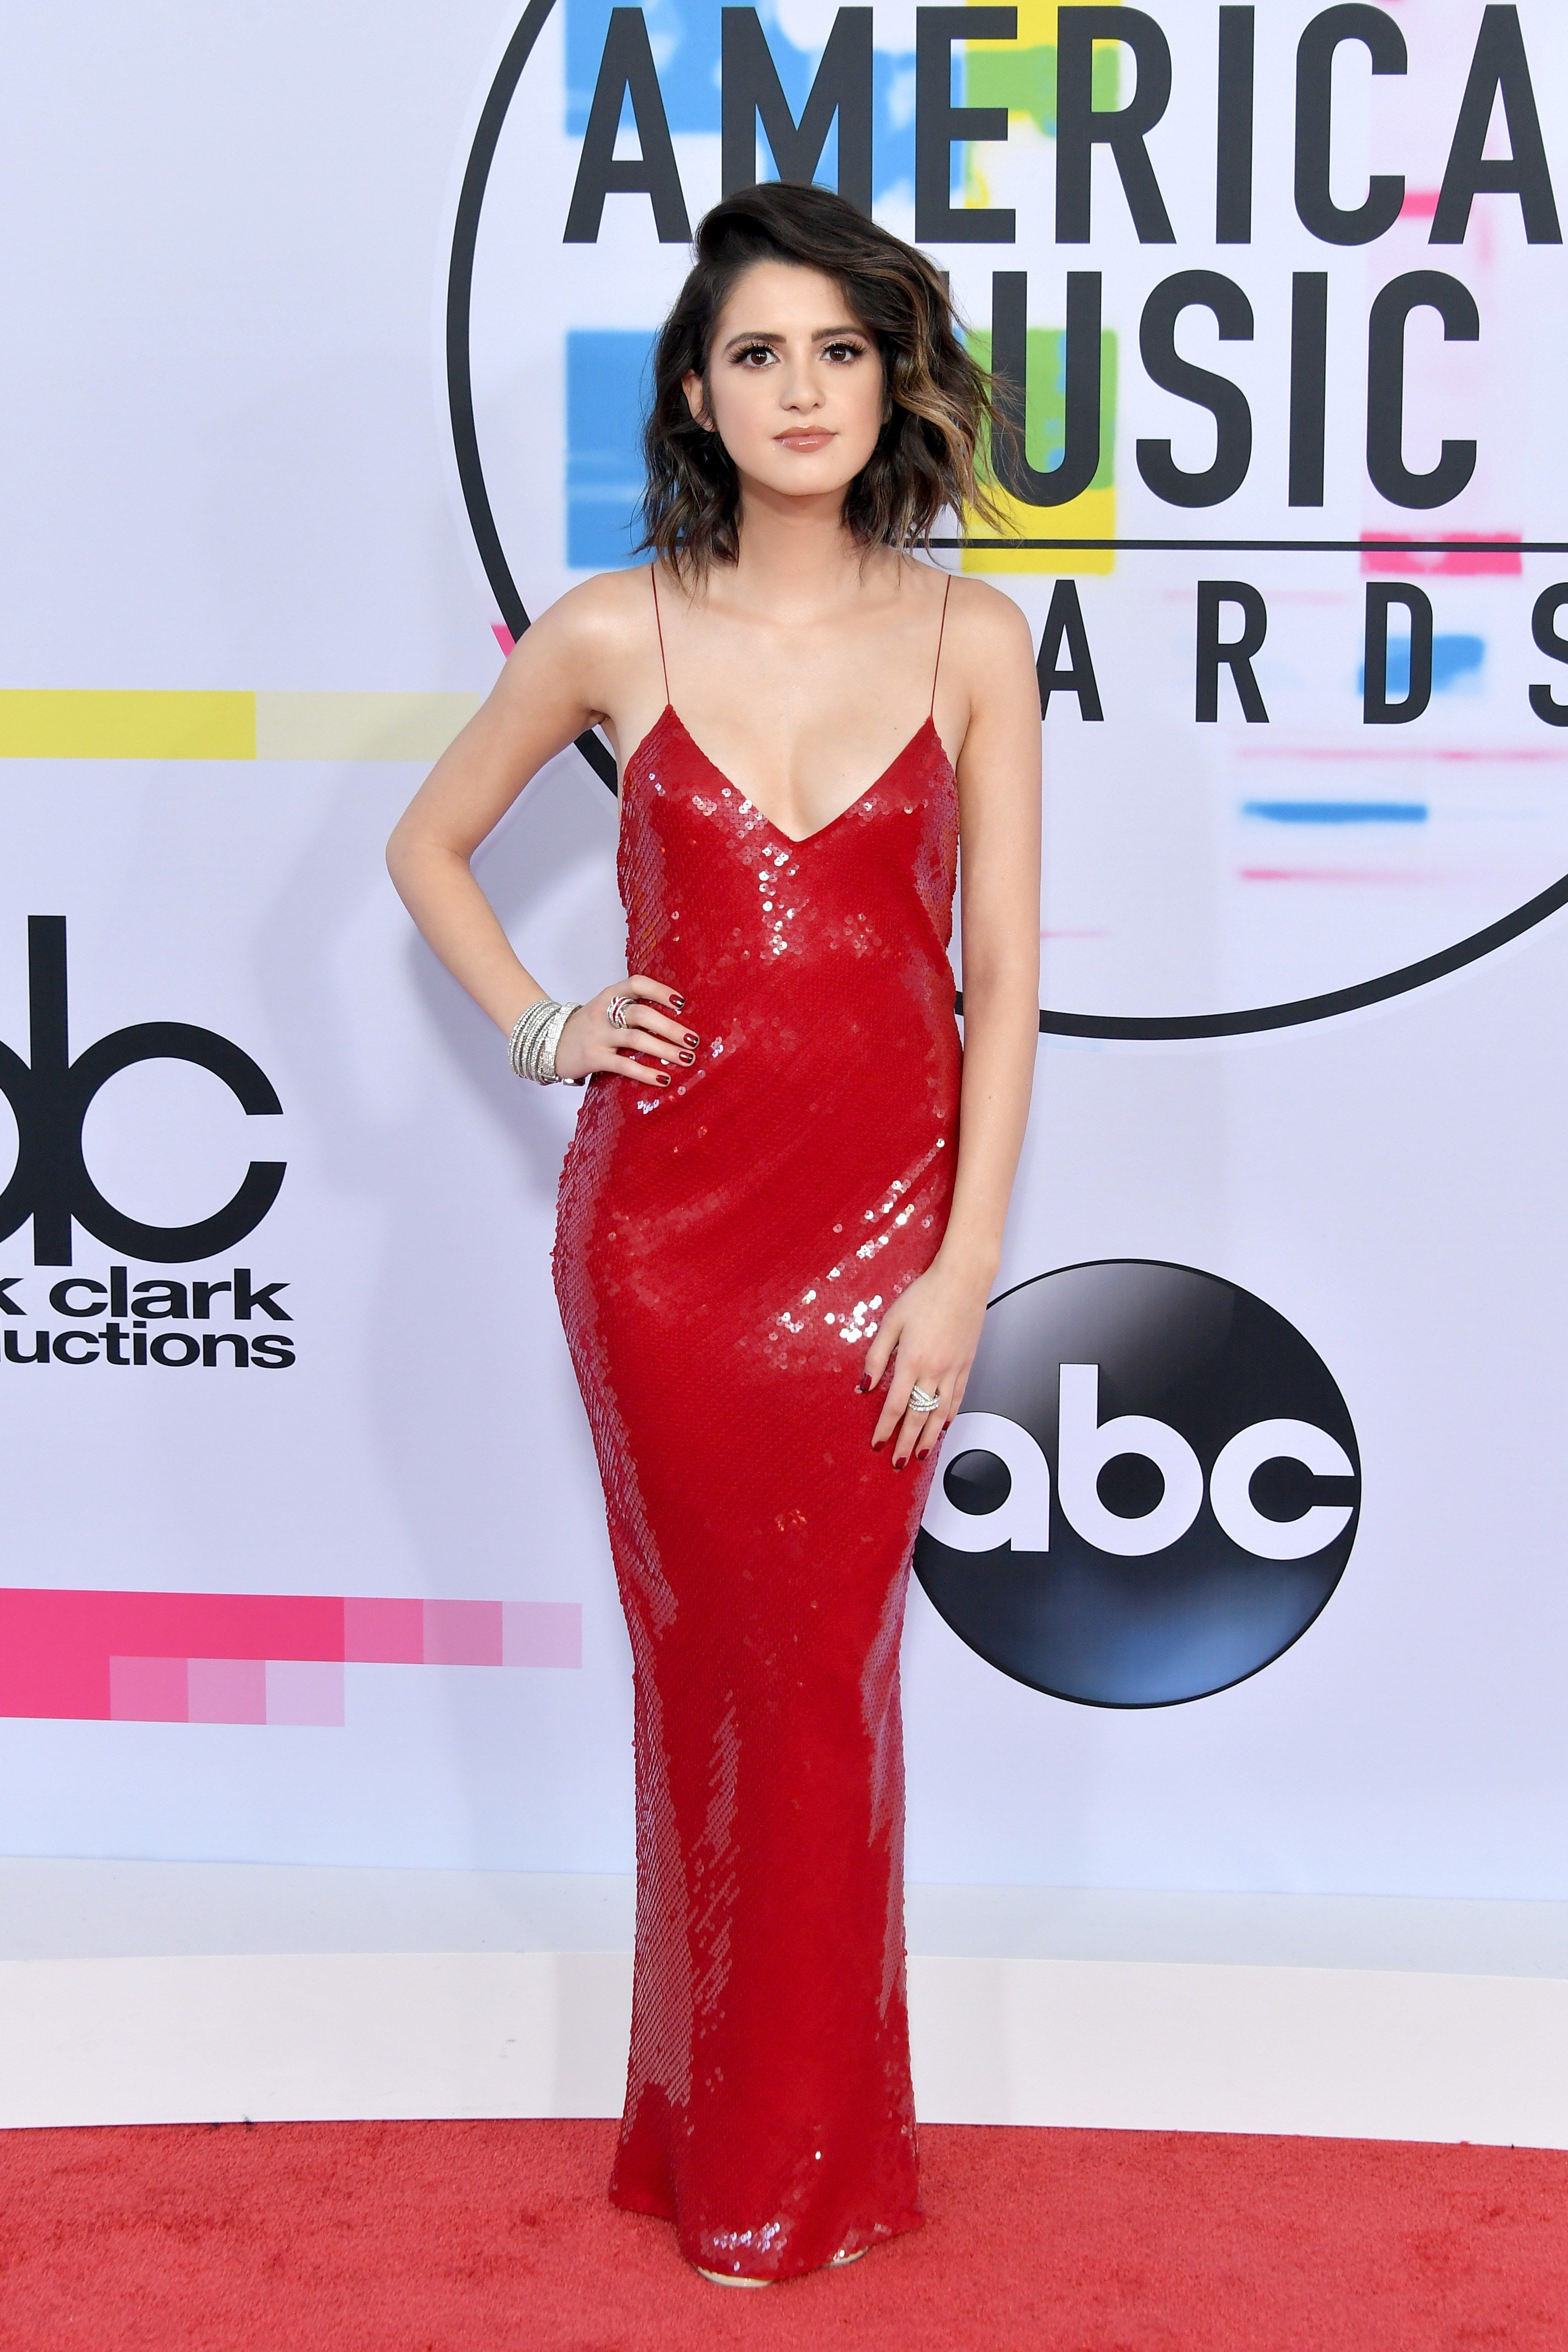 All the Looks at the 2017 American Music Awards Red Carpet